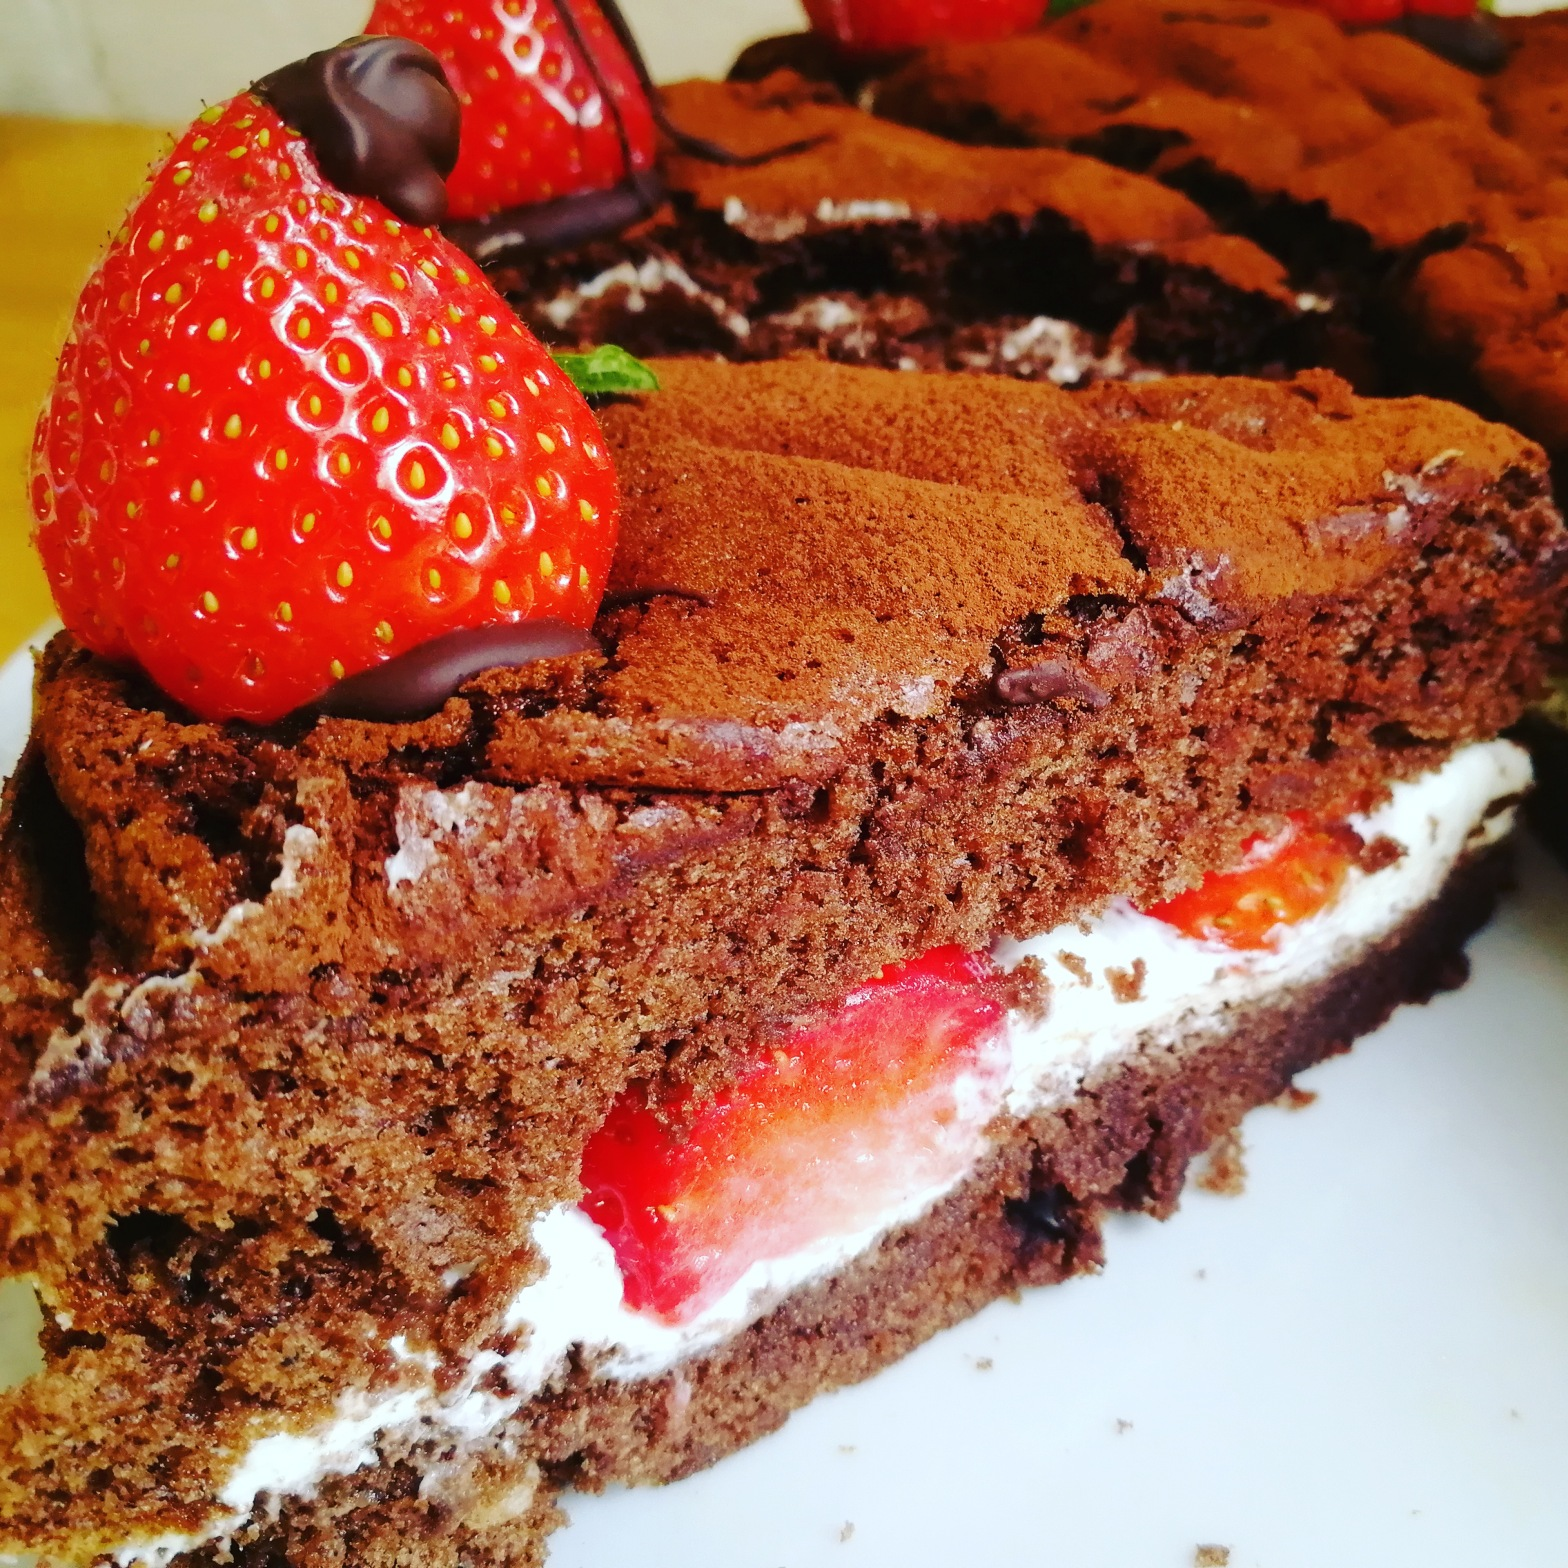 food, Chocolate, strawberries, cake, glutenfree